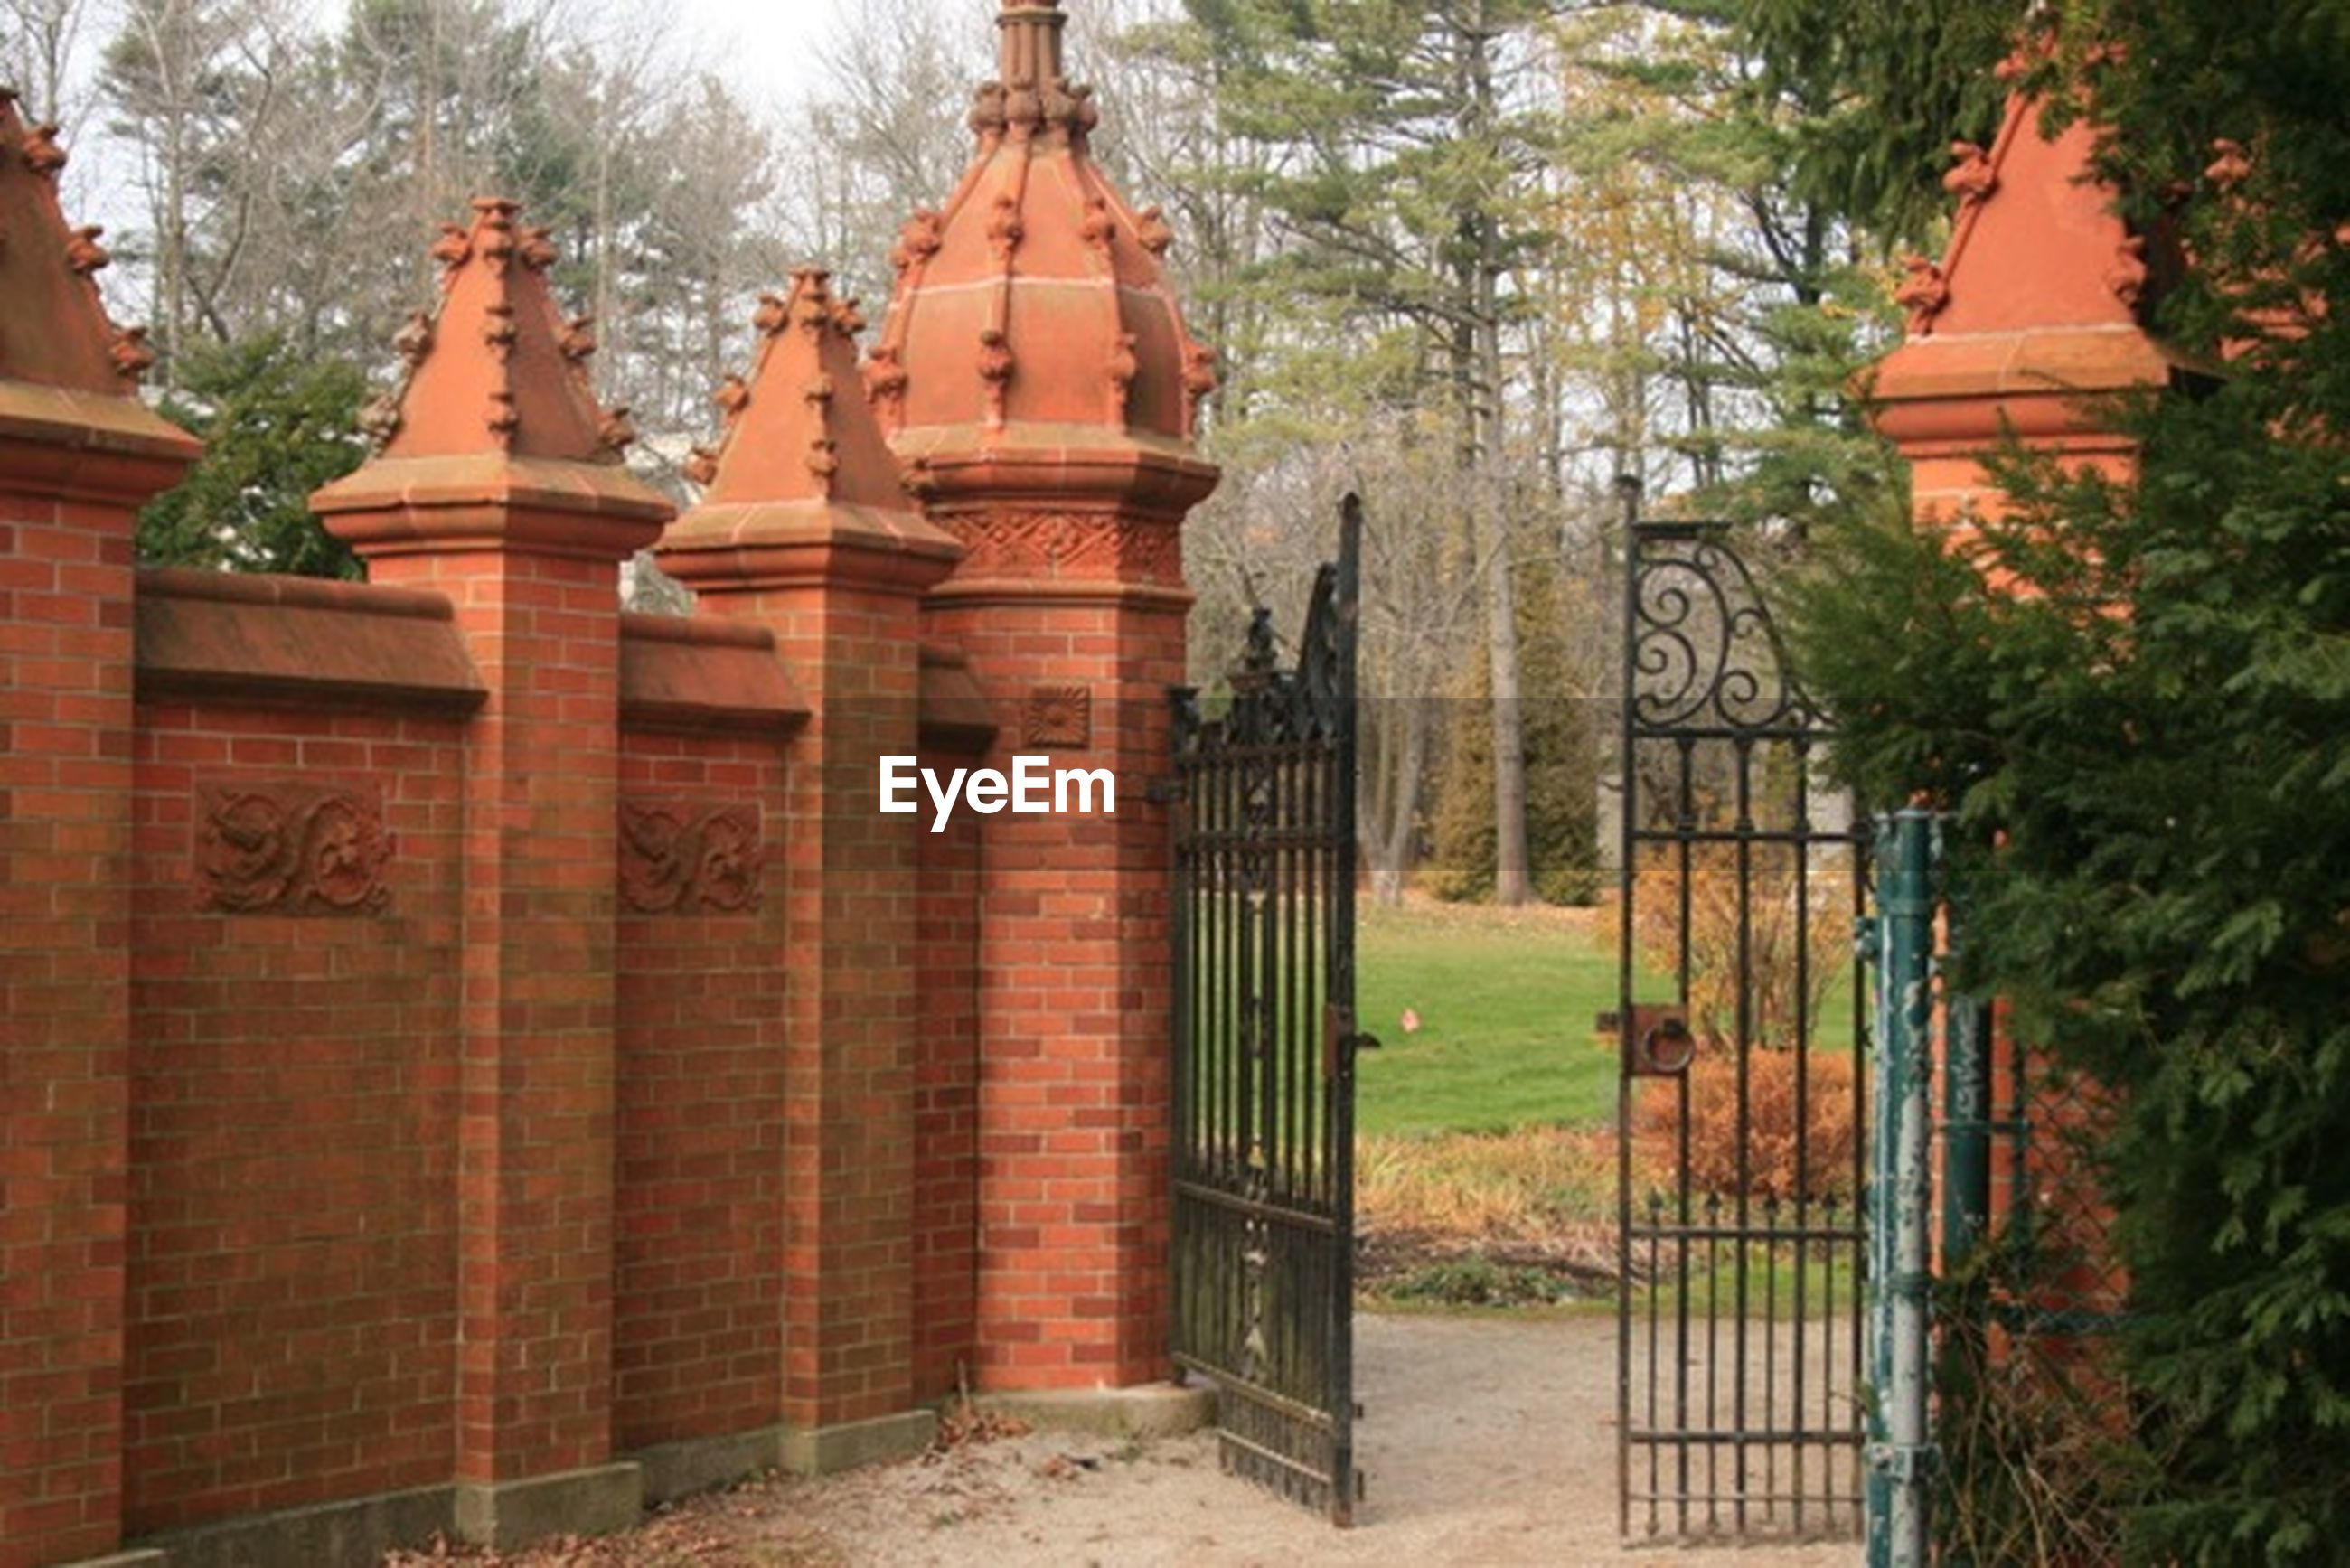 built structure, architecture, building exterior, tree, gate, entrance, door, closed, day, old, house, no people, outdoors, safety, protection, architectural column, wood - material, religion, fence, wall - building feature